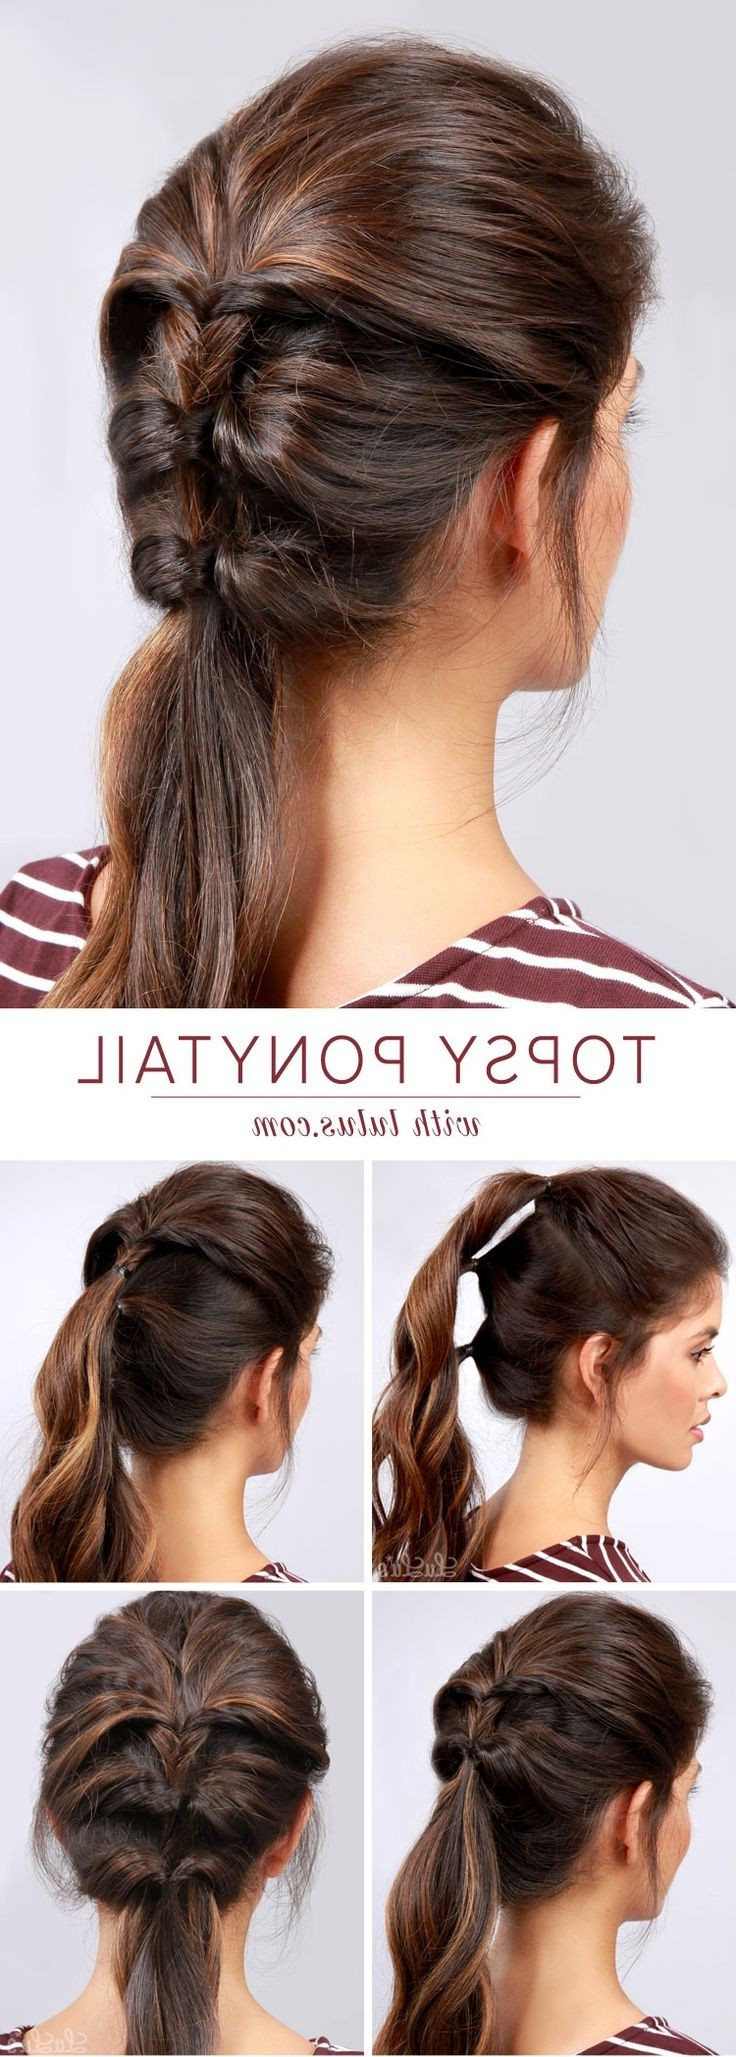 22 Great Ponytail Hairstyles For Girls – Pretty Designs Pertaining To Most Up To Date Strong Braid Ponytail Hairstyles (View 17 of 20)